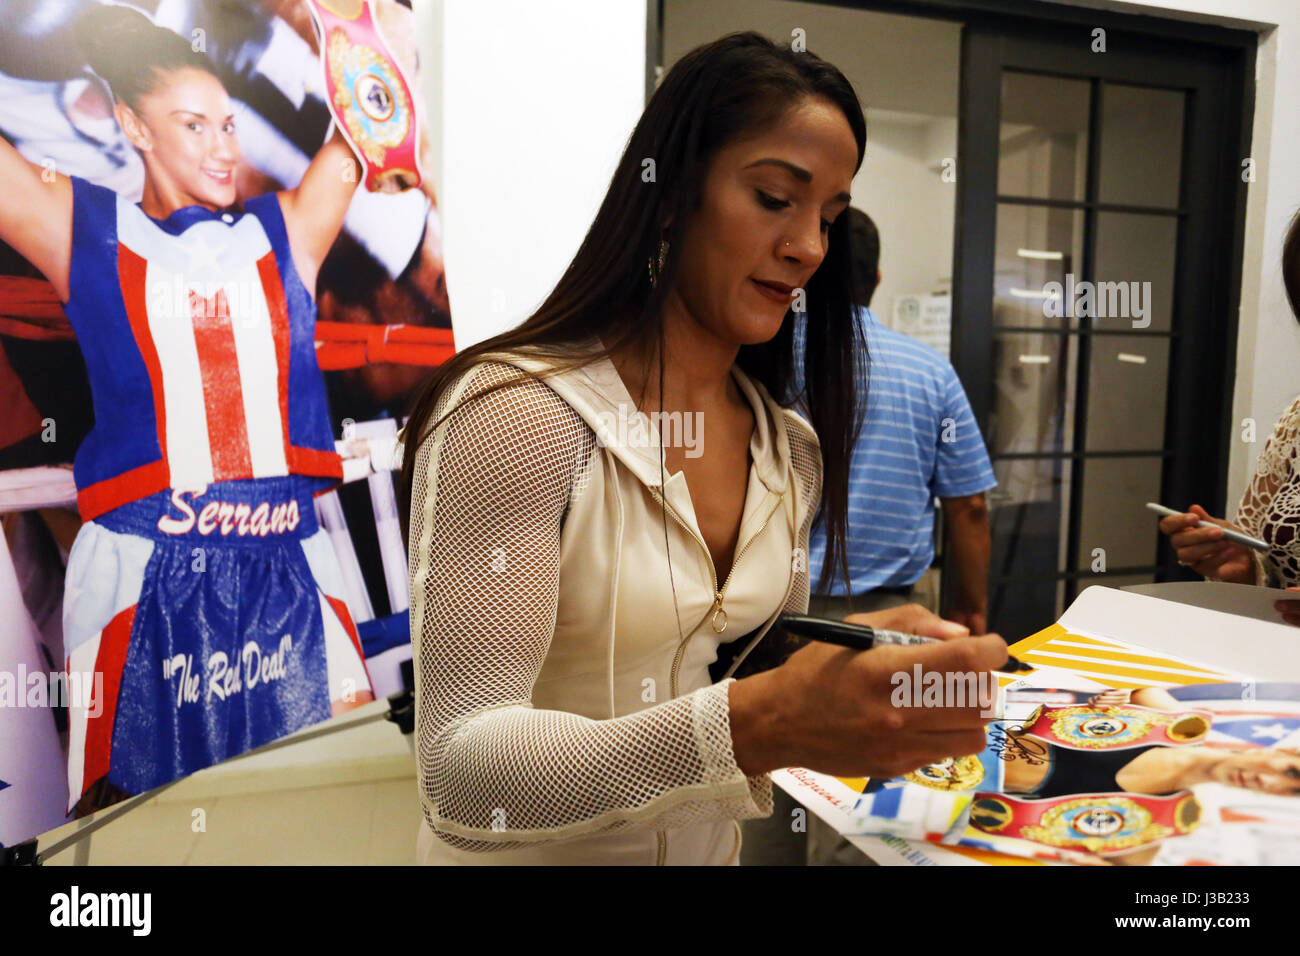 Puerto Rican boxer Amanda Serrano signs autographs after winning her belt and ring from the rooster weight division - Stock Image